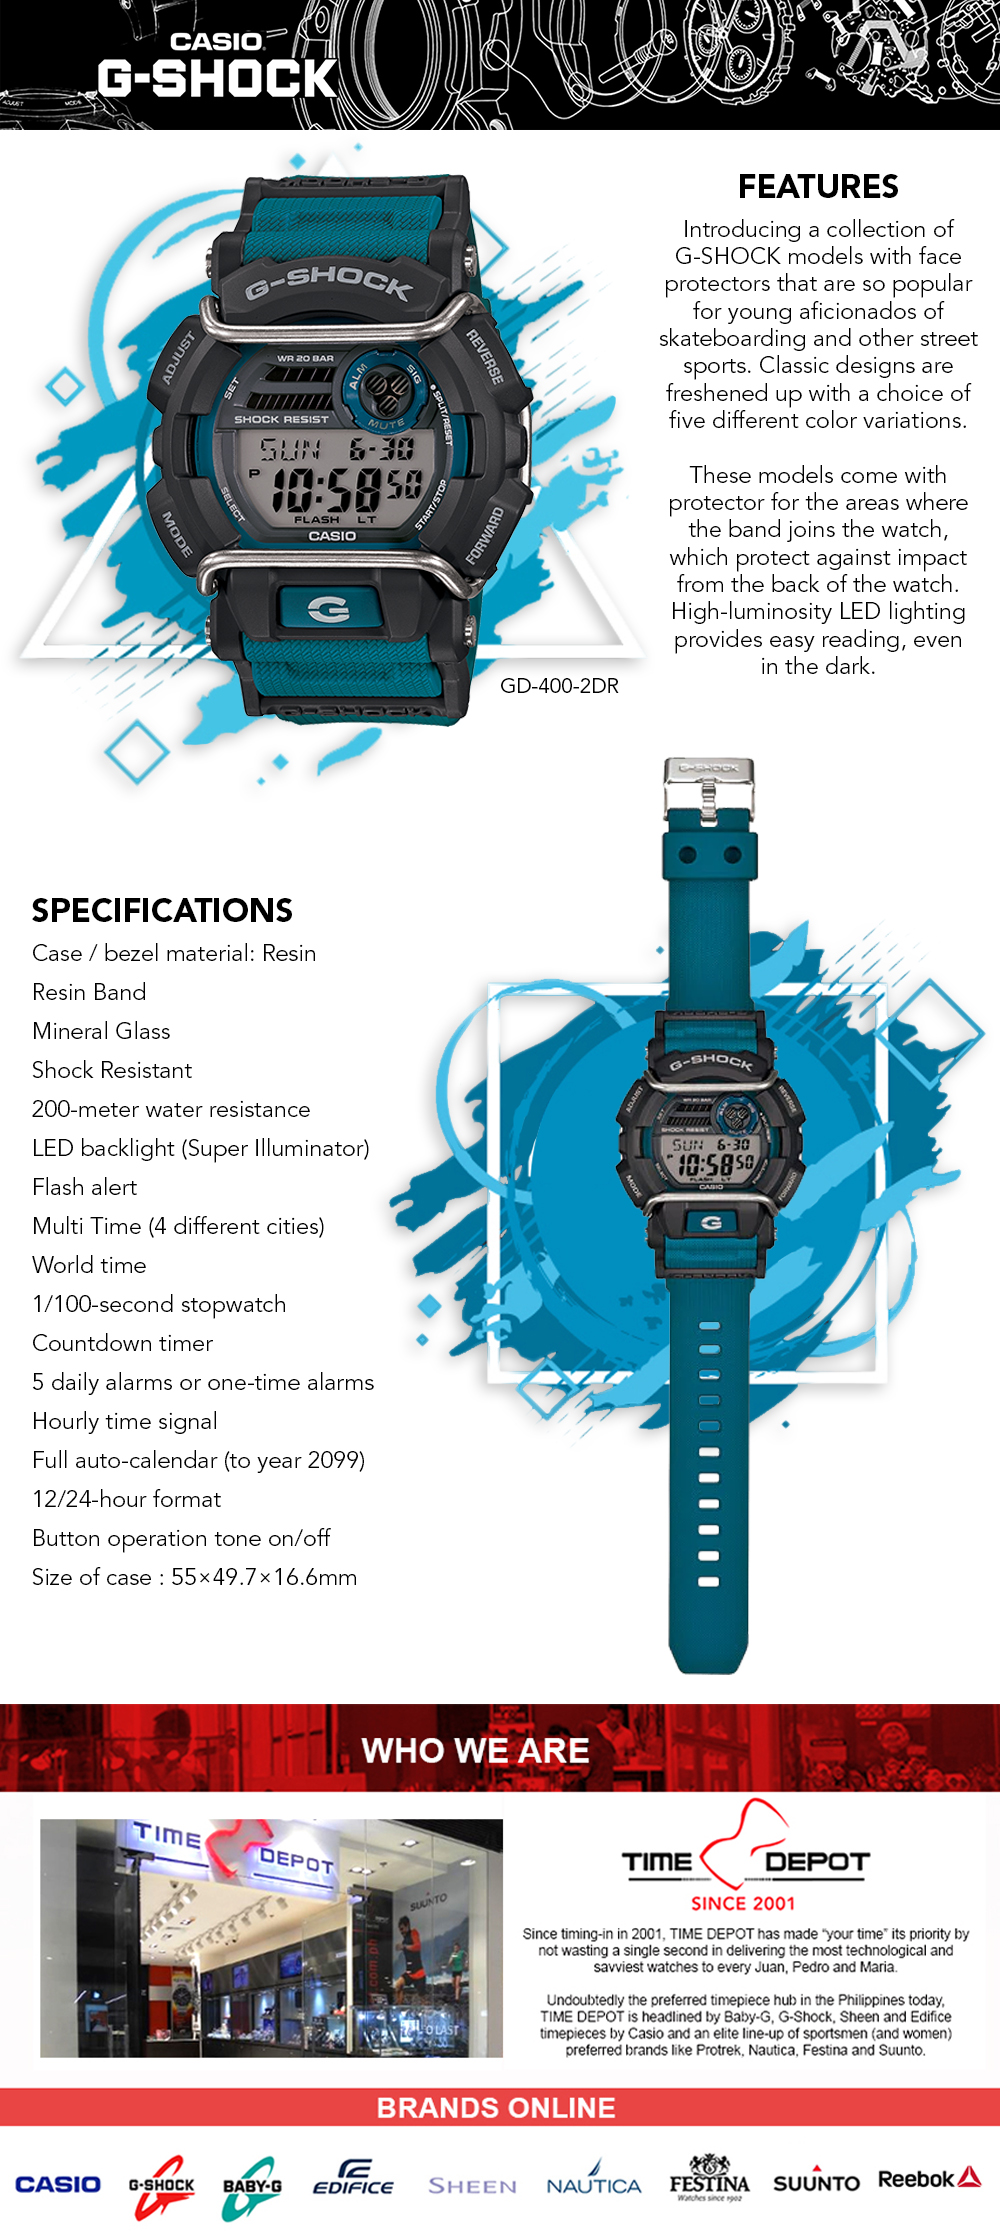 6516f252862 Specifications of Casio G-Shock Super illuminator with protector Men's Blue  Resin Strap Watch GD-400-2DR